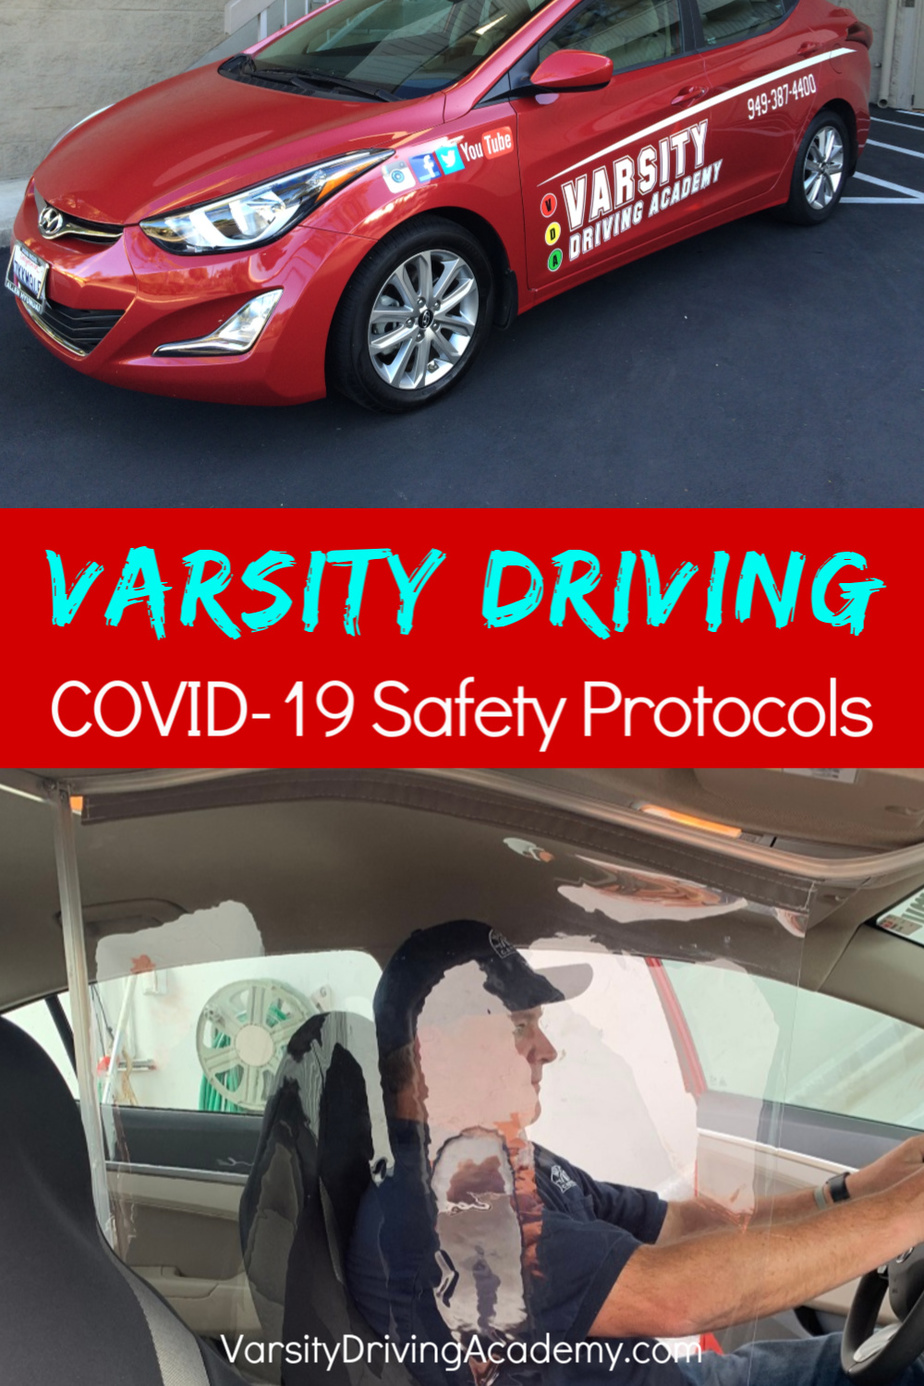 Varsity Driving Academy COVID-19 safety protocols will add even more layers of protection for students who need to learn how to drive.